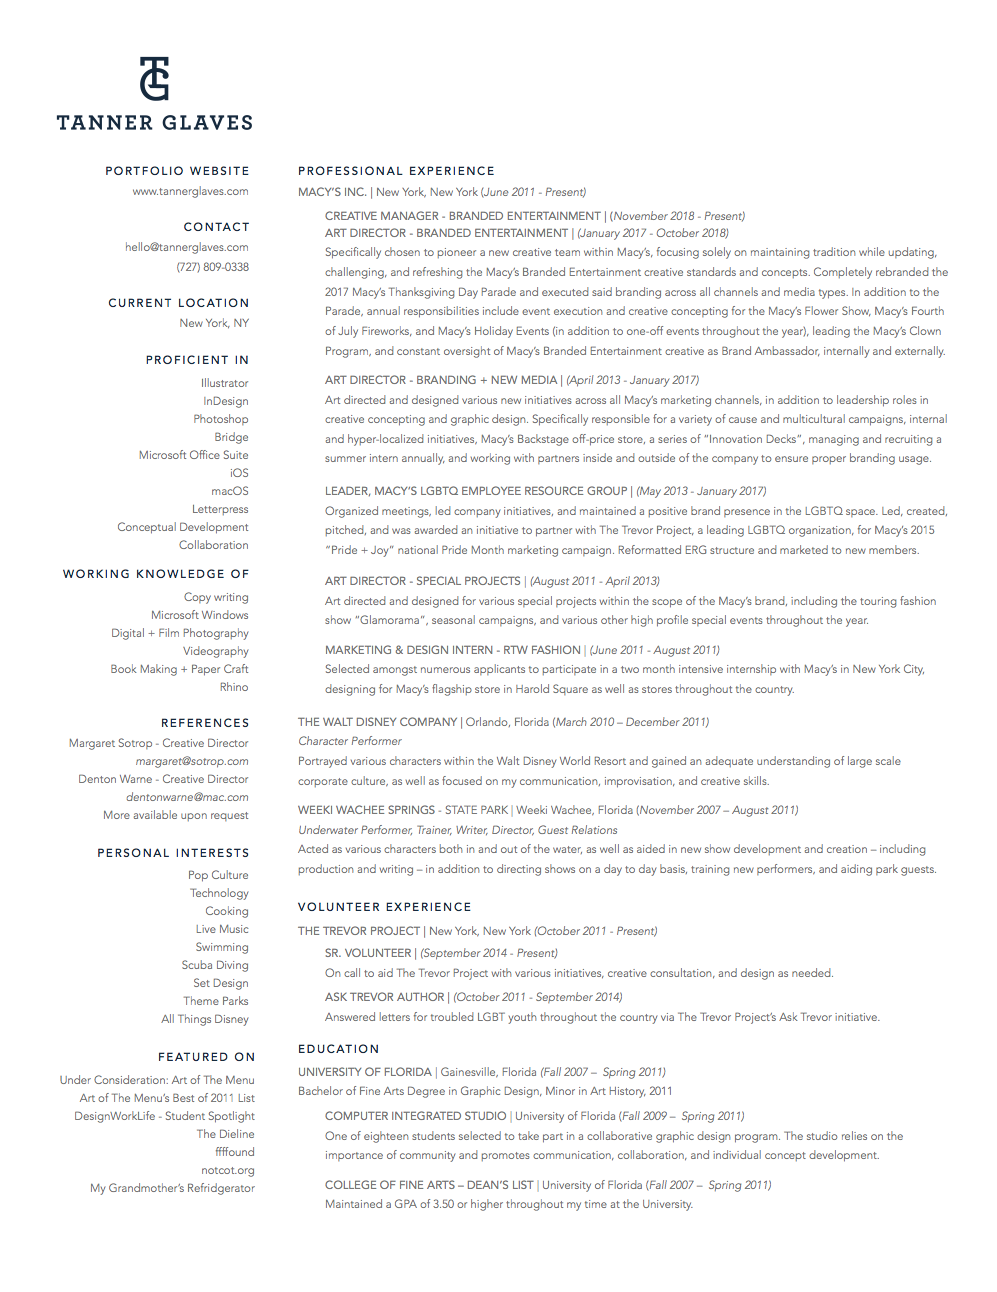 Resume + Contact Information - Tanner Glaves